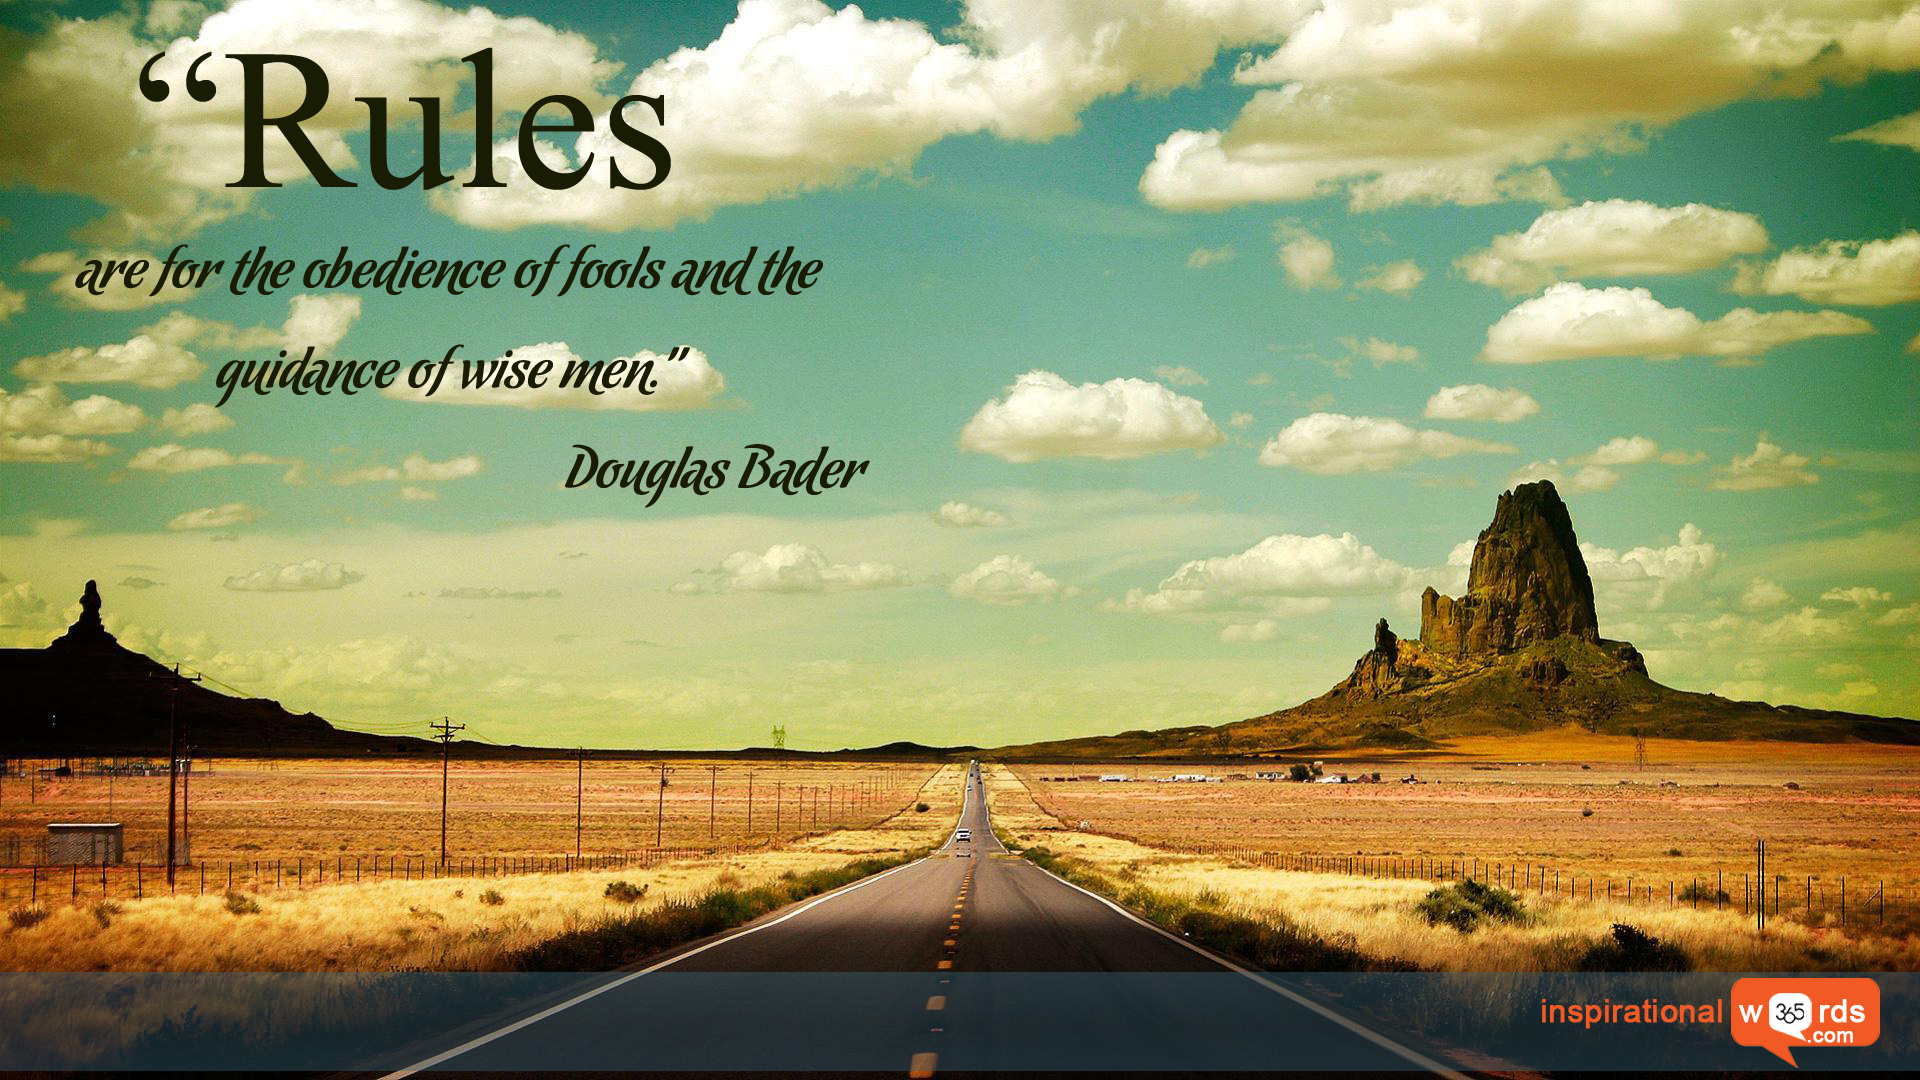 Inspirational Wallpaper Quote by Douglas Bader